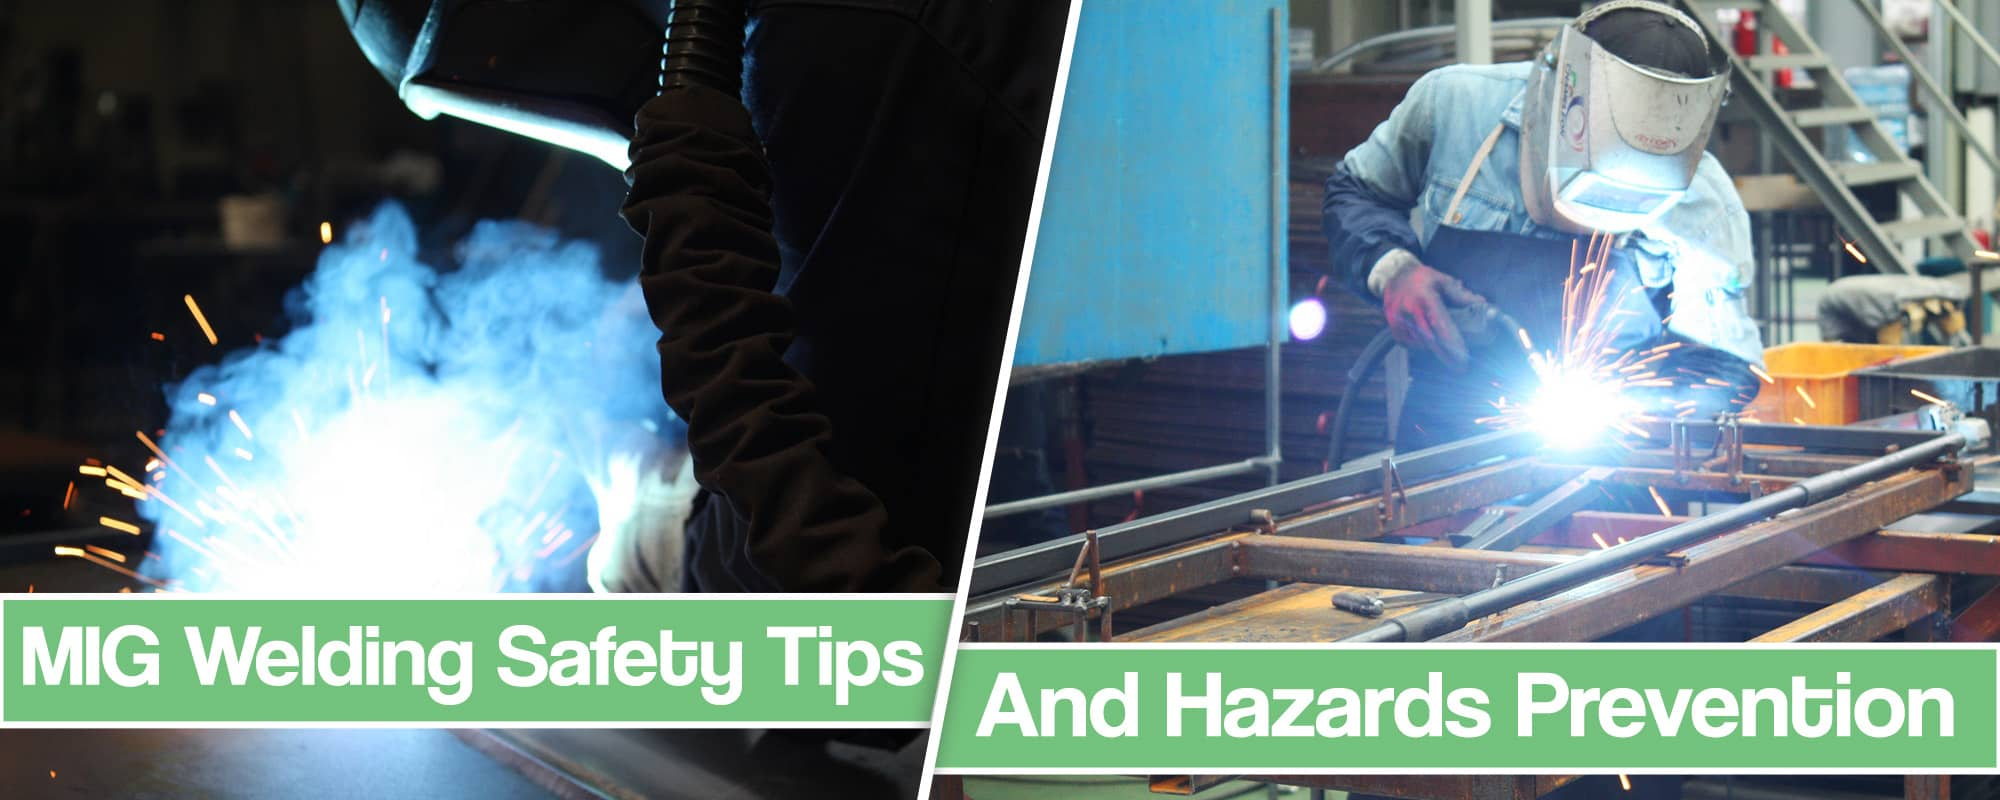 Feature image for MIG Welding Safety article